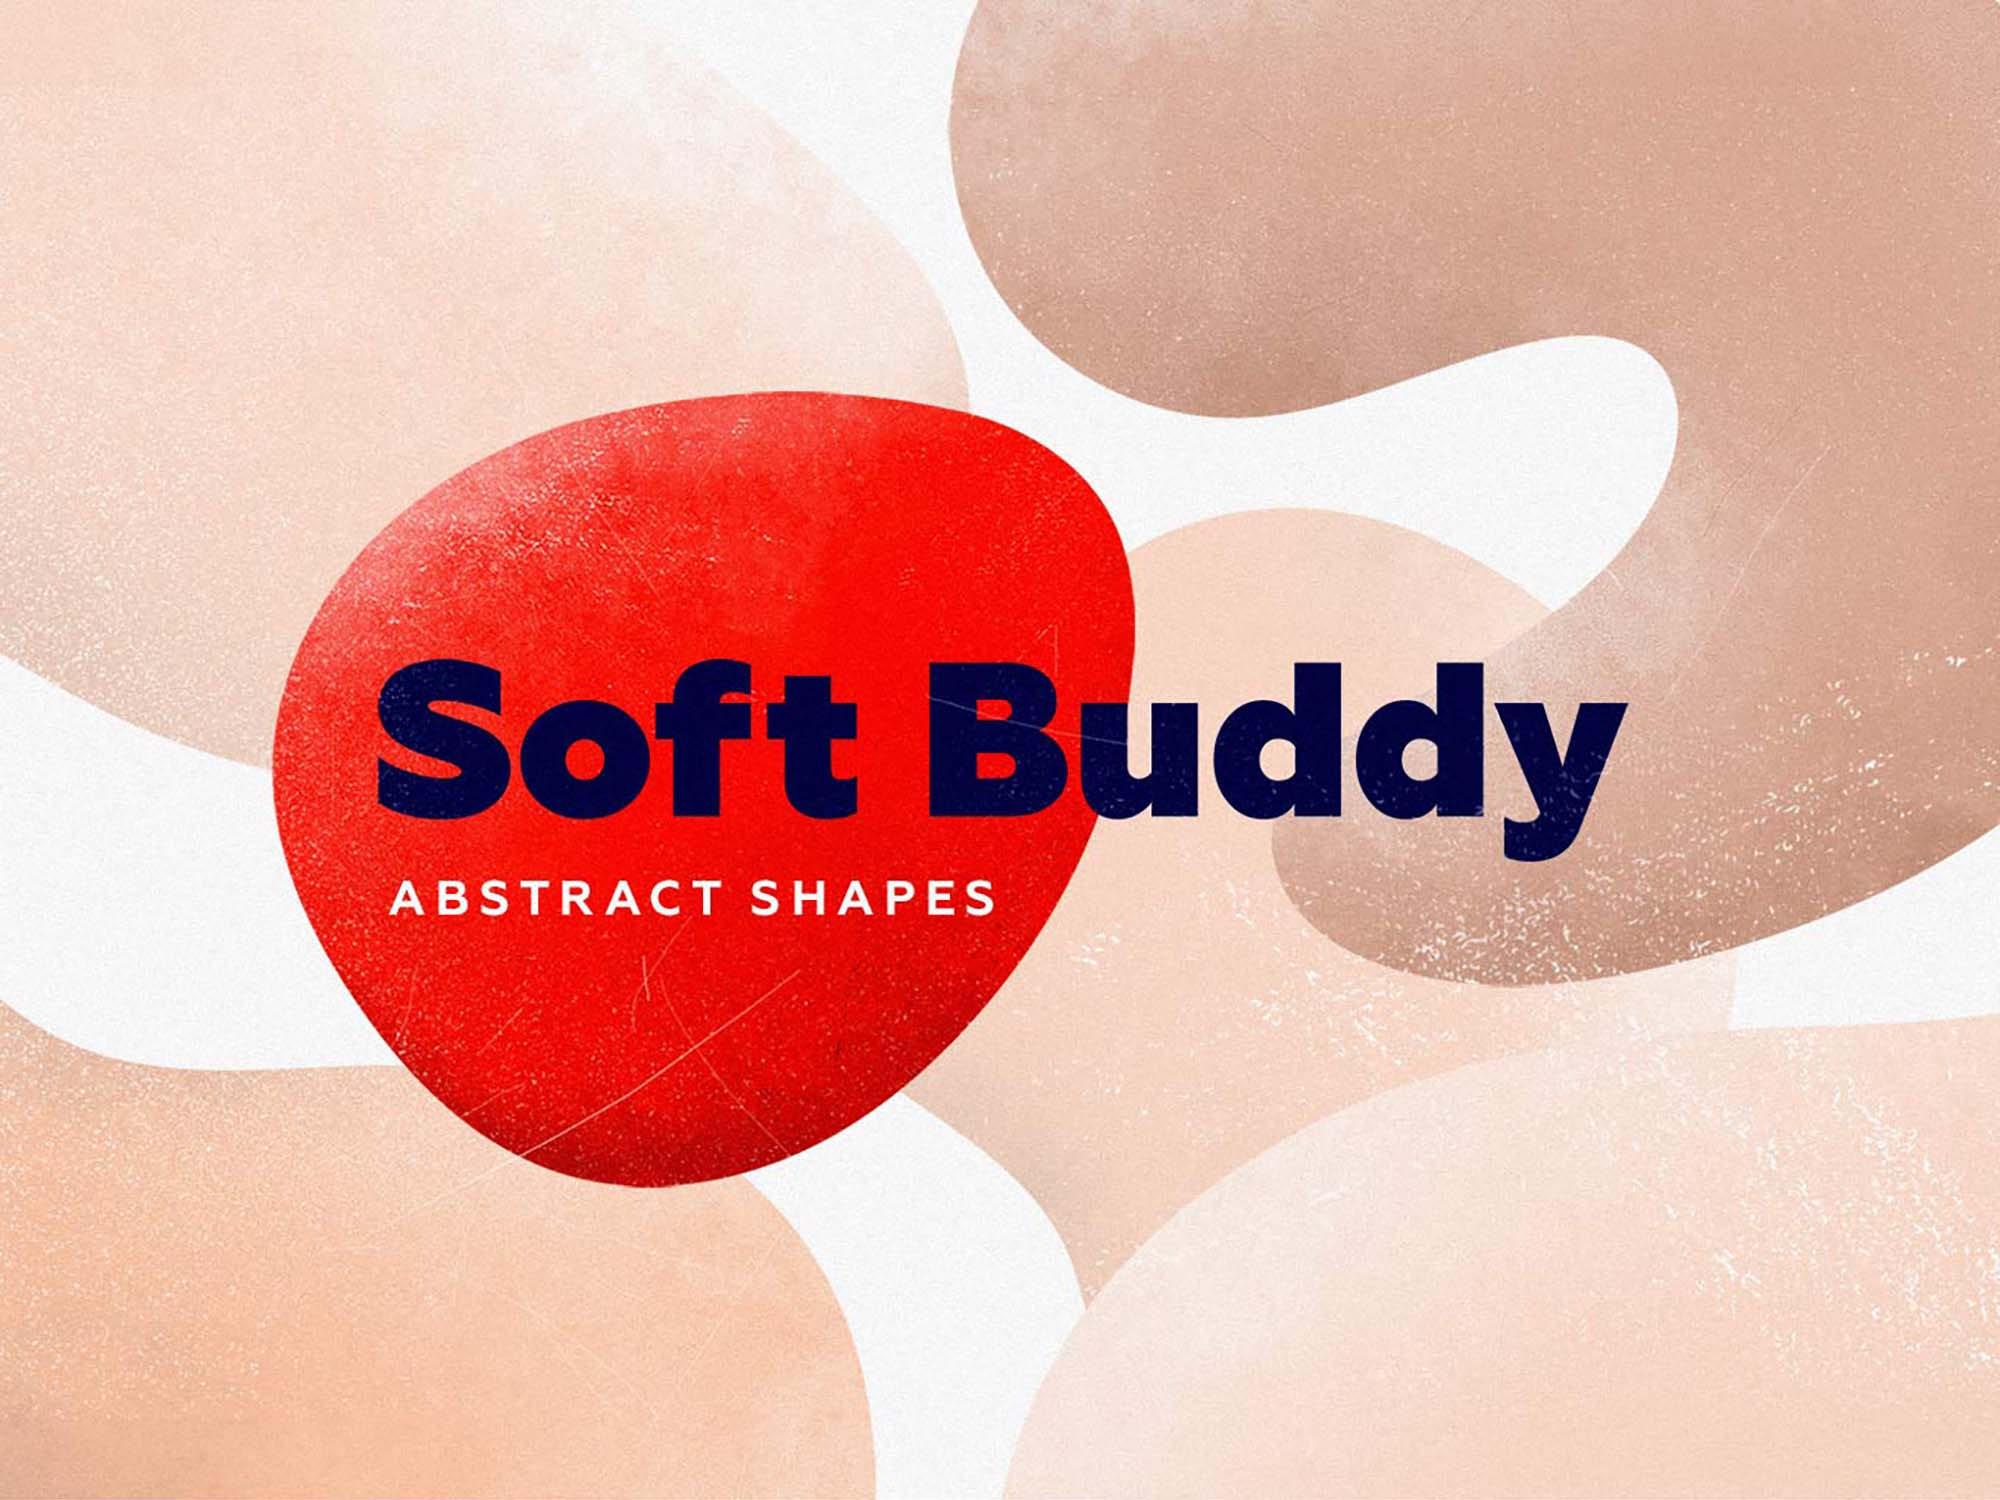 Soft Buddy Abstract Shapes